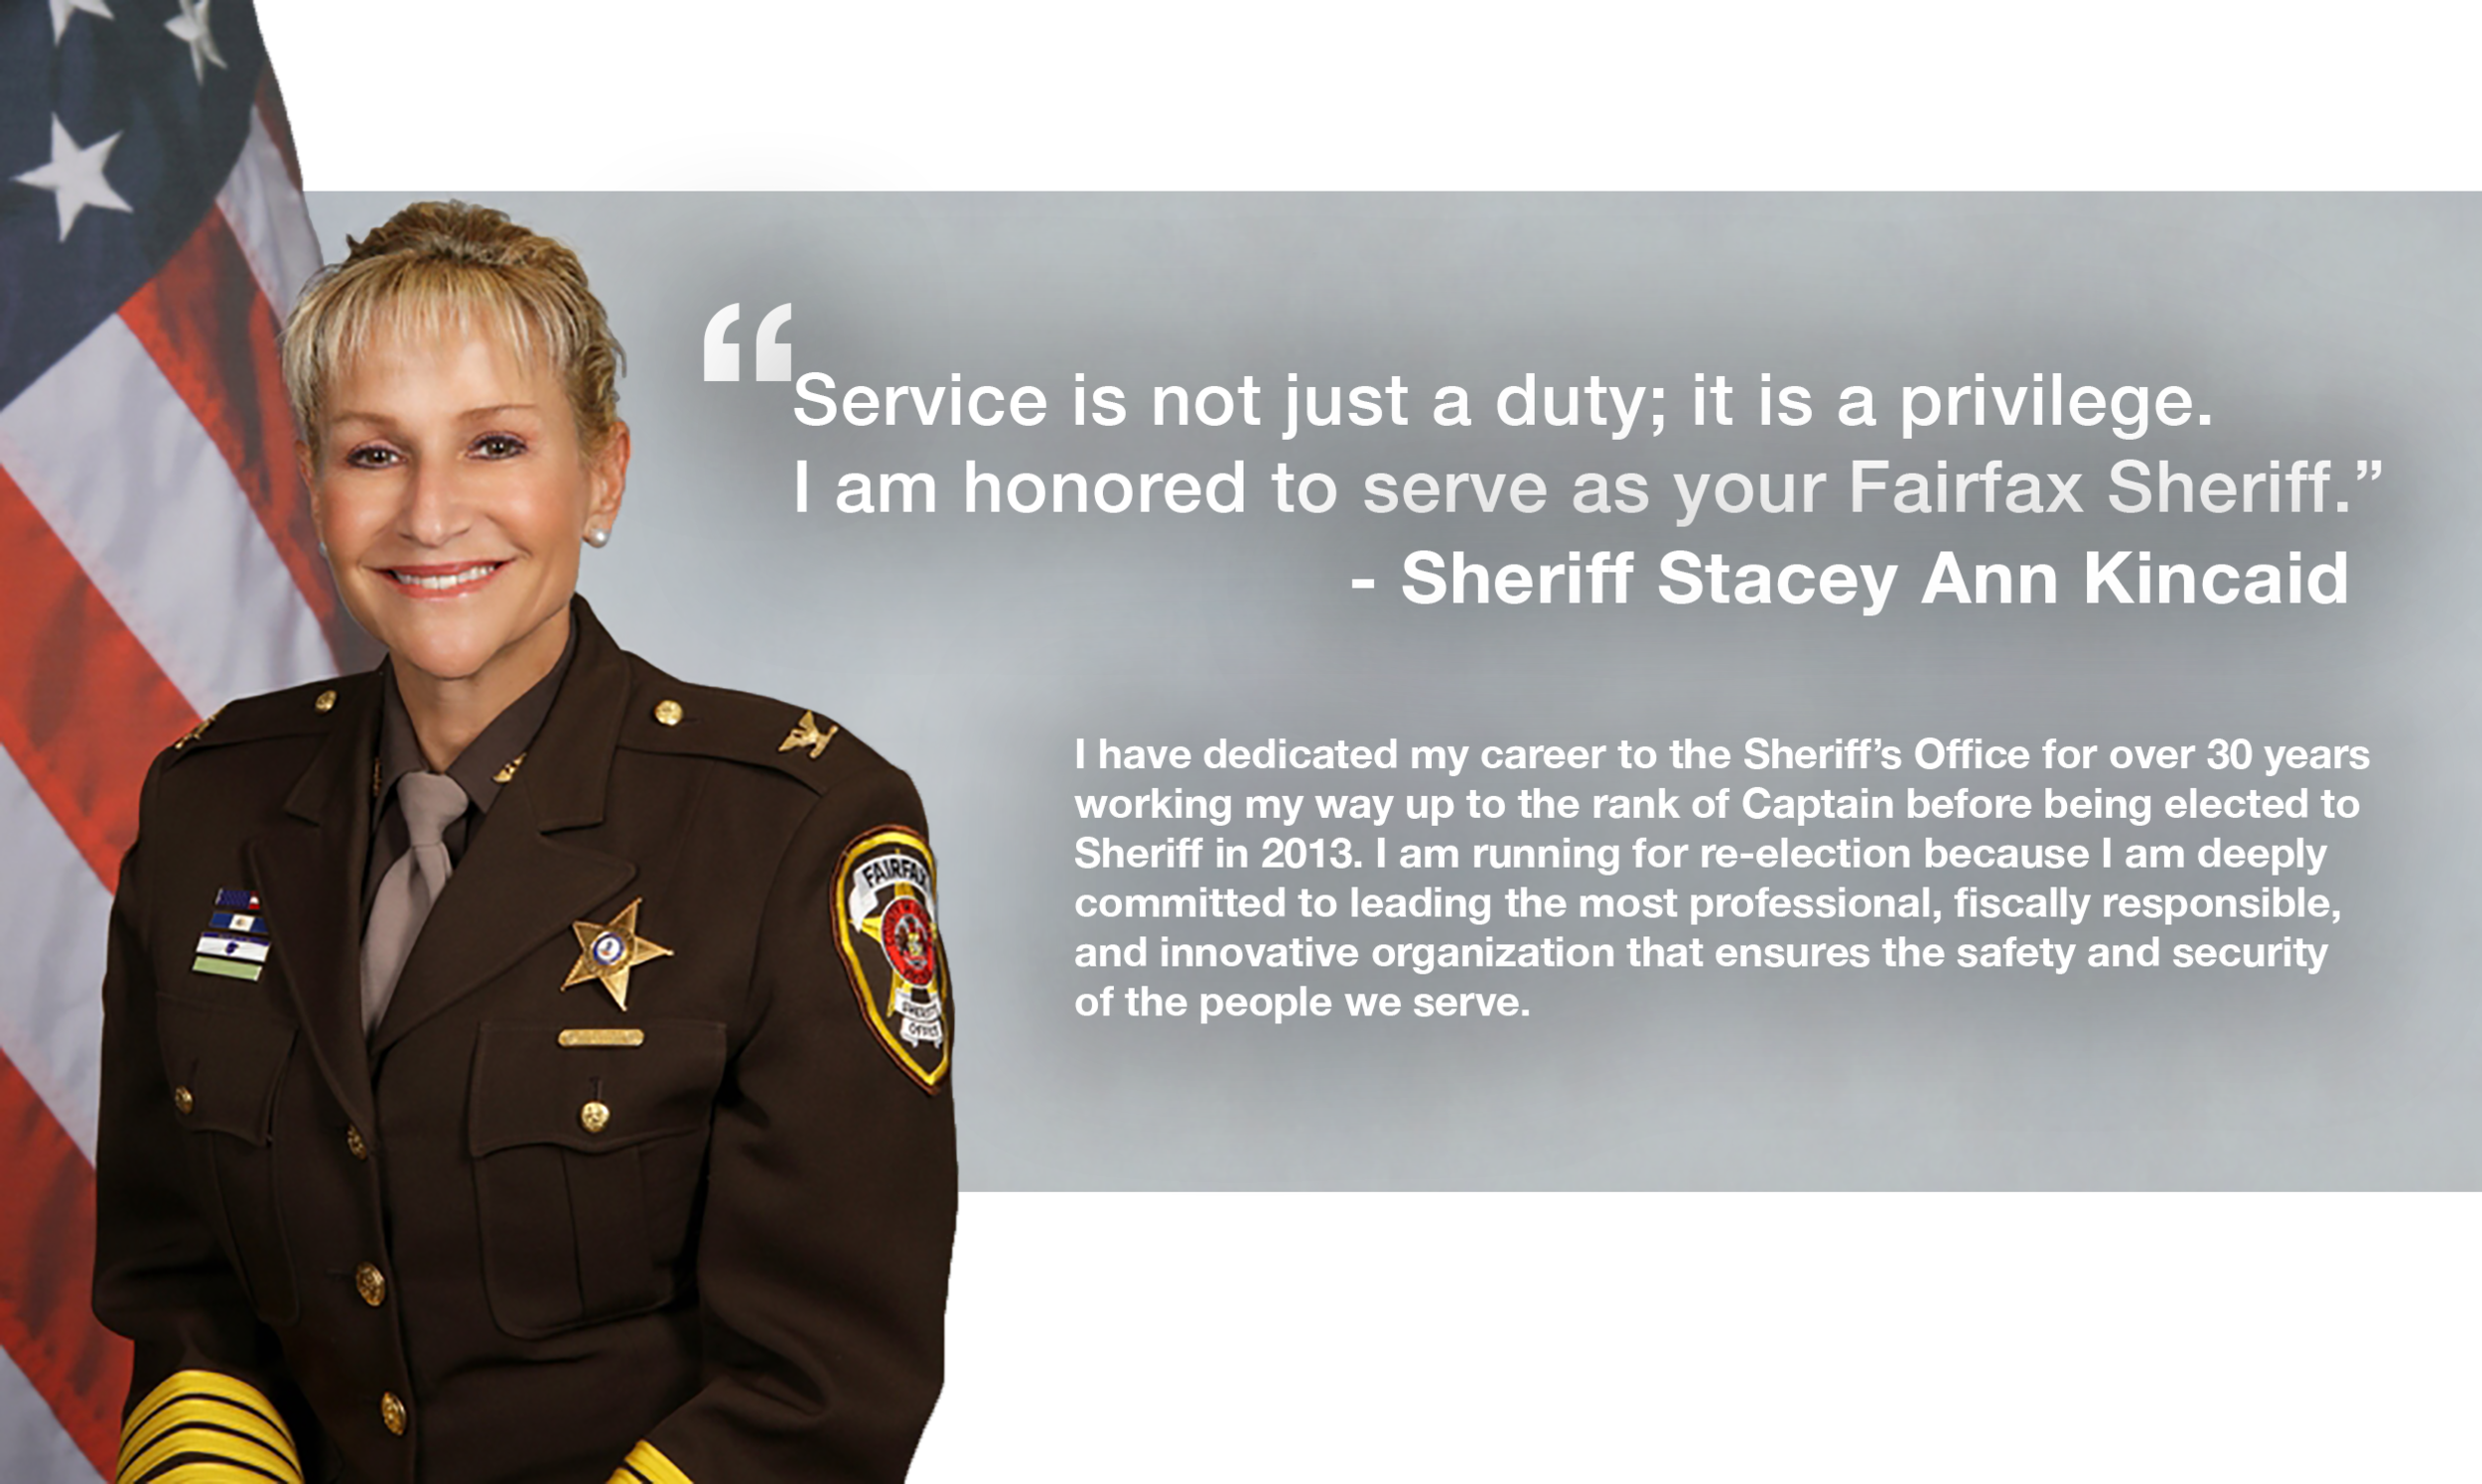 Sheriff-Kincaid-Quote-Photo.png